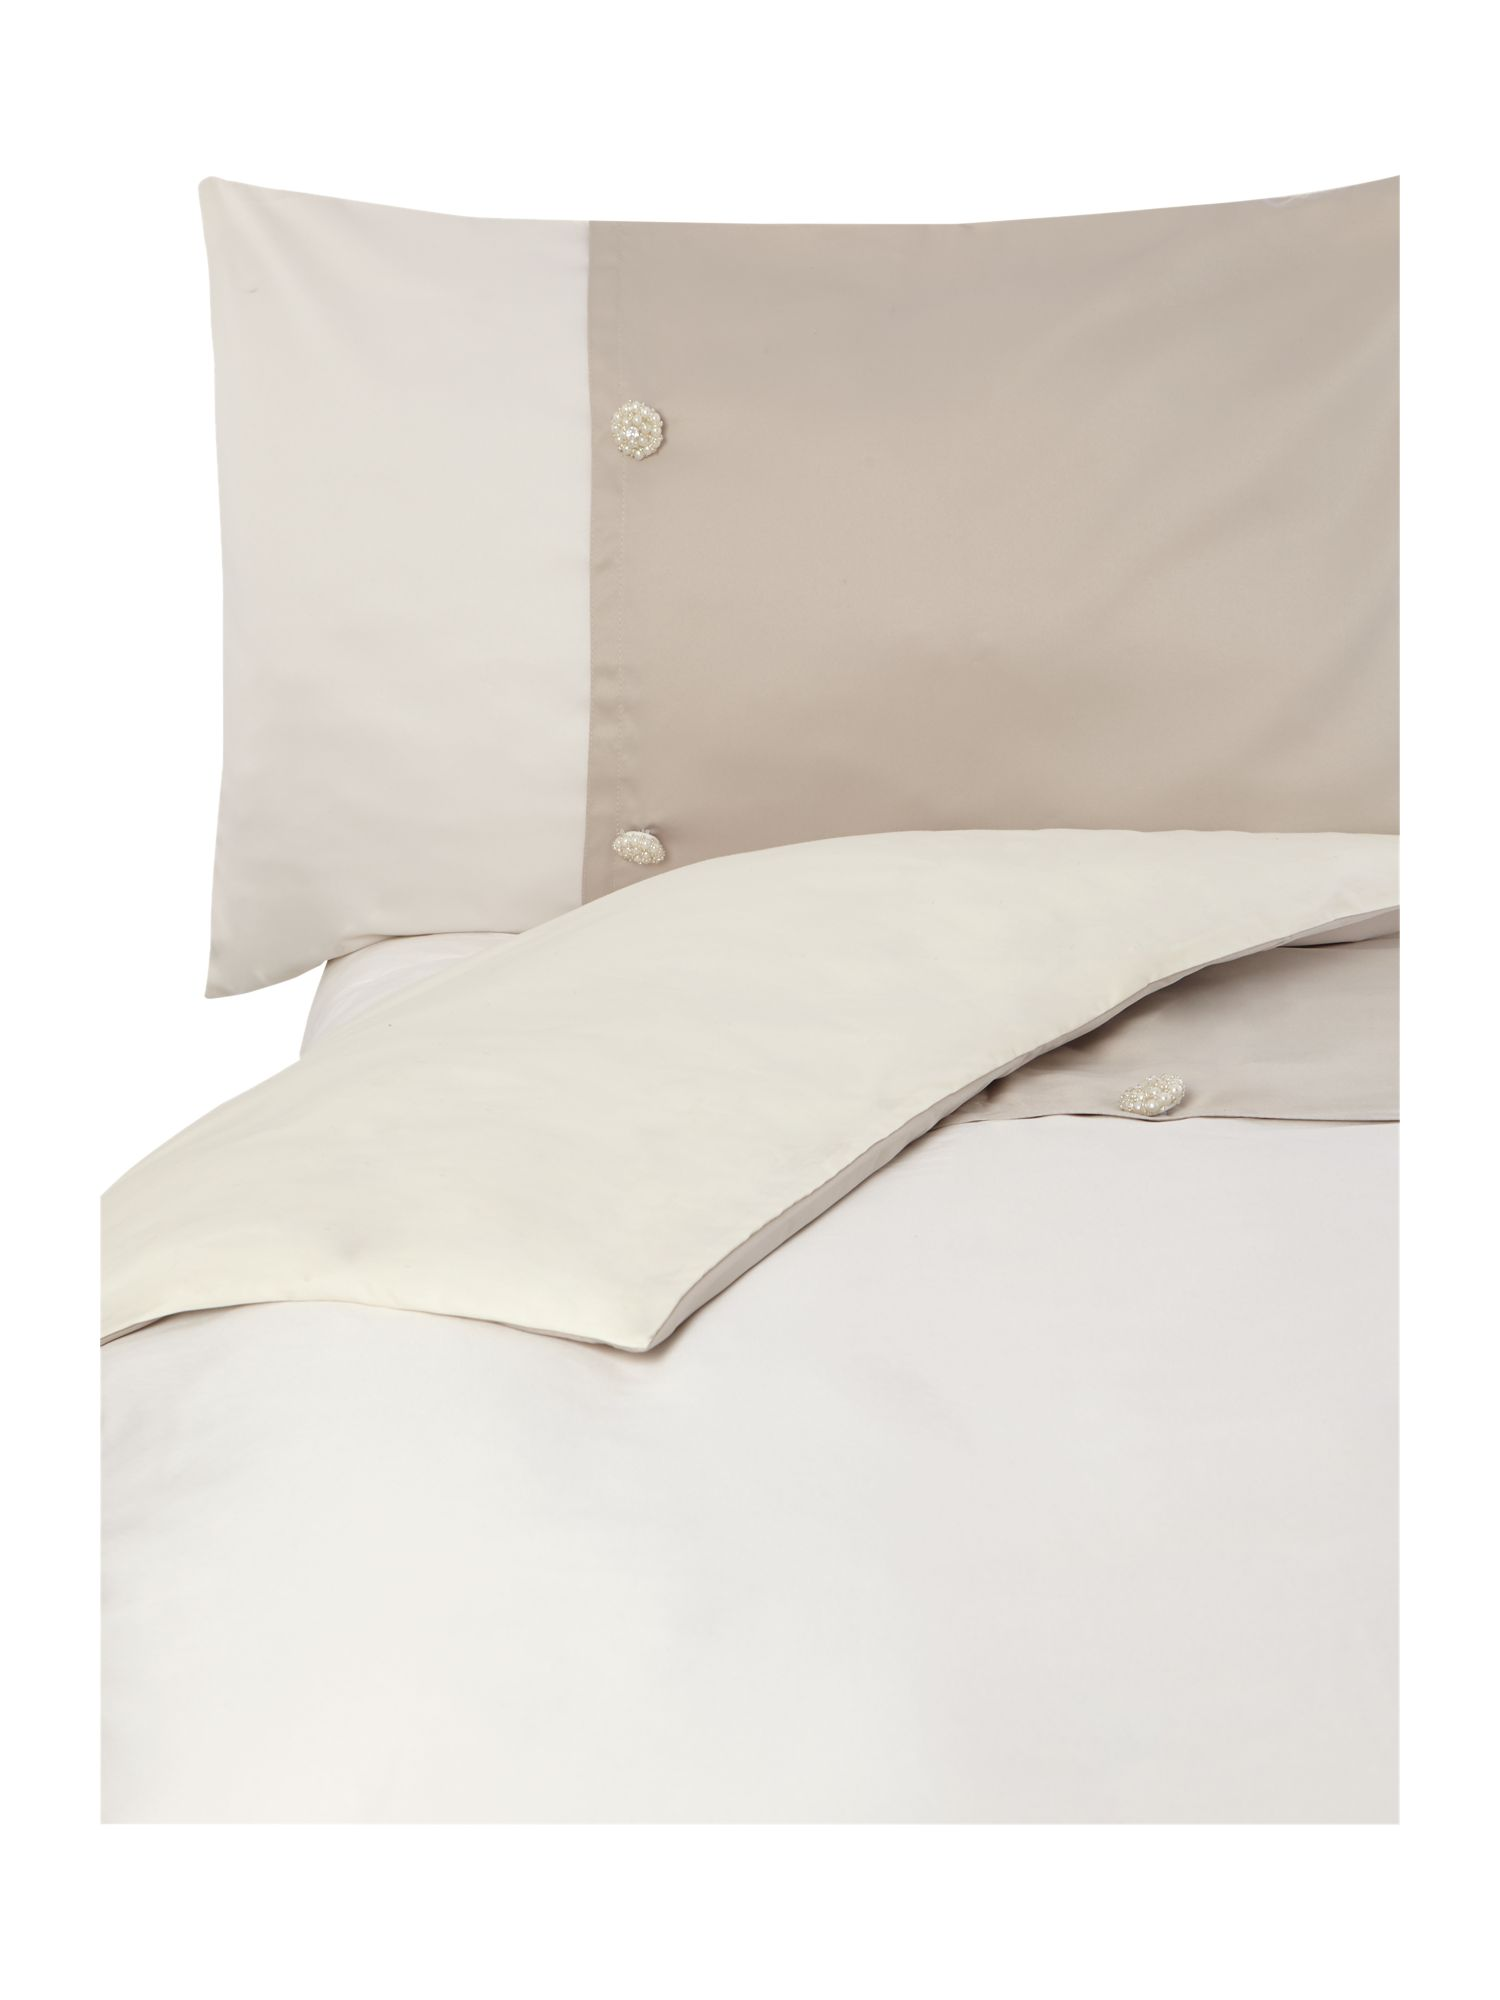 Catarina oyster bed linen